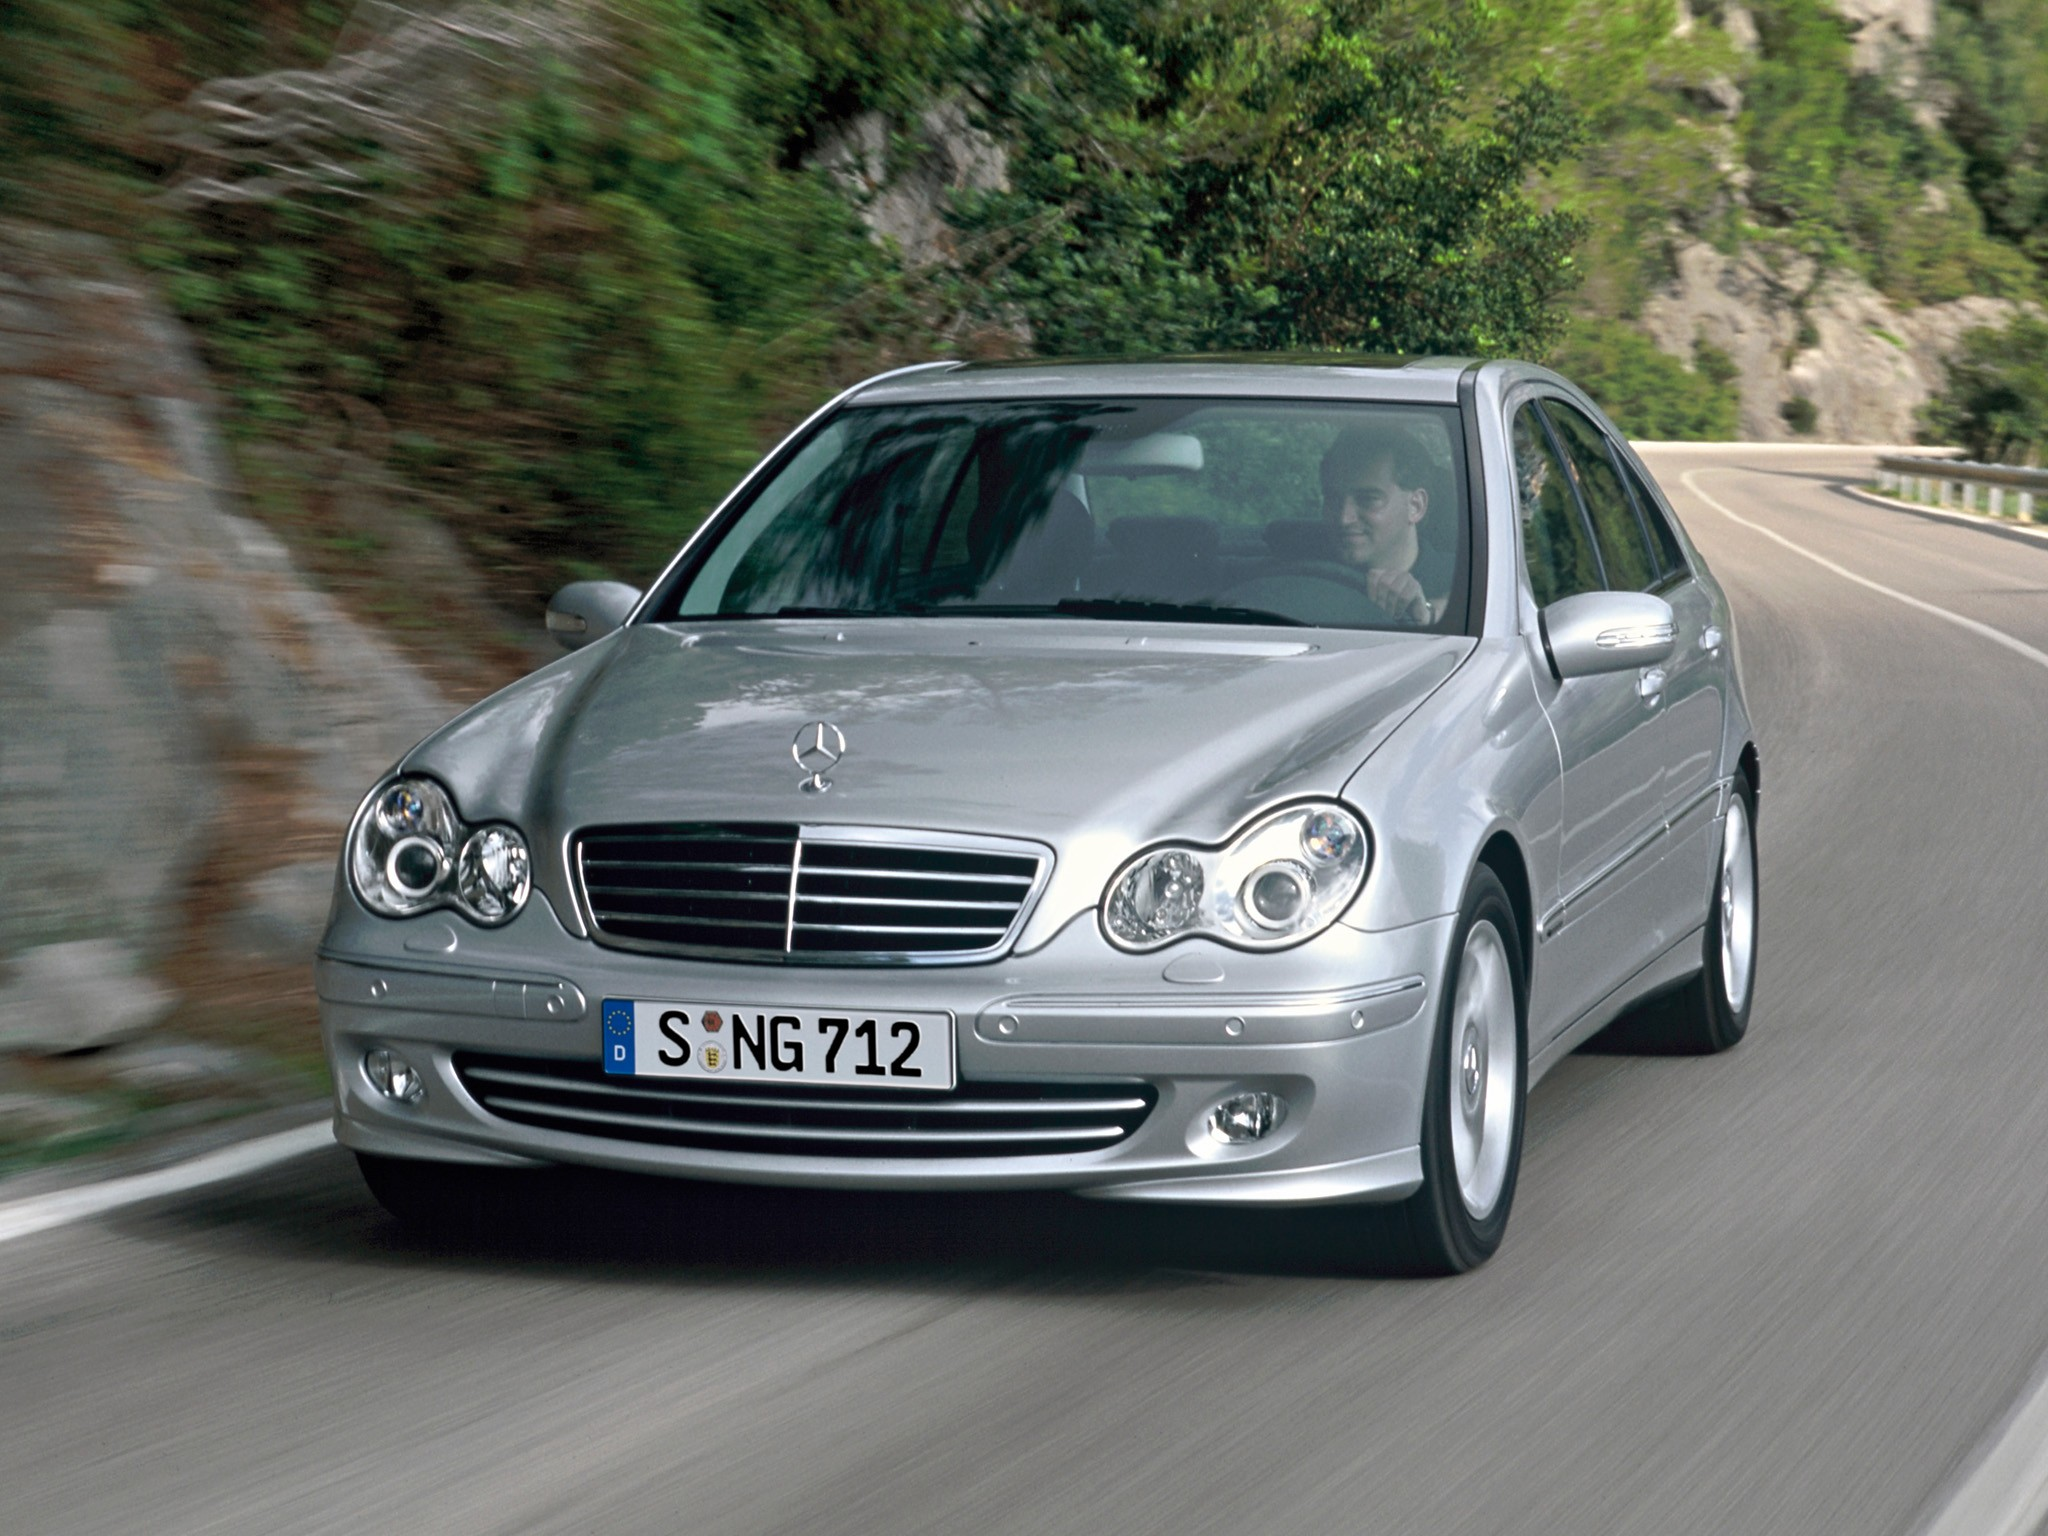 Jerking In Car >> MERCEDES BENZ C-Klasse (W203) - 2004, 2005, 2006, 2007 - autoevolution